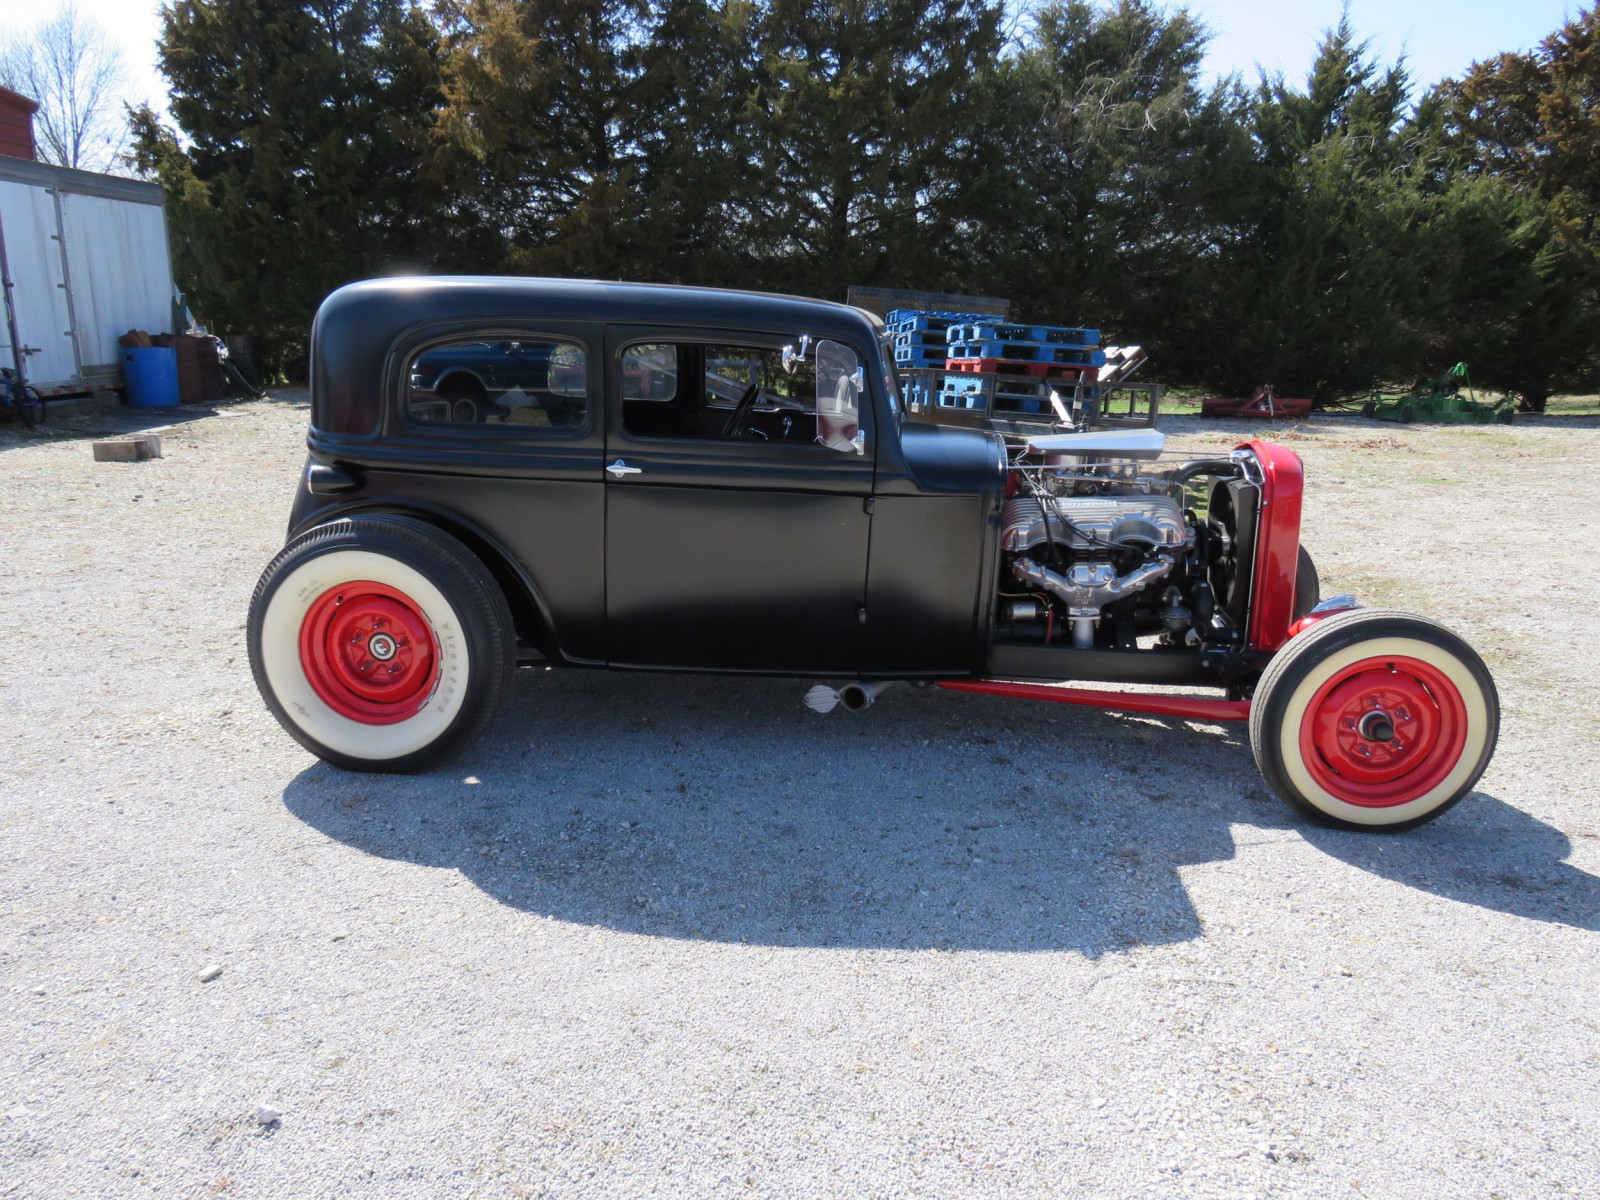 1929 Ford 23dr Sedan Custom Hot Rod - Image 4